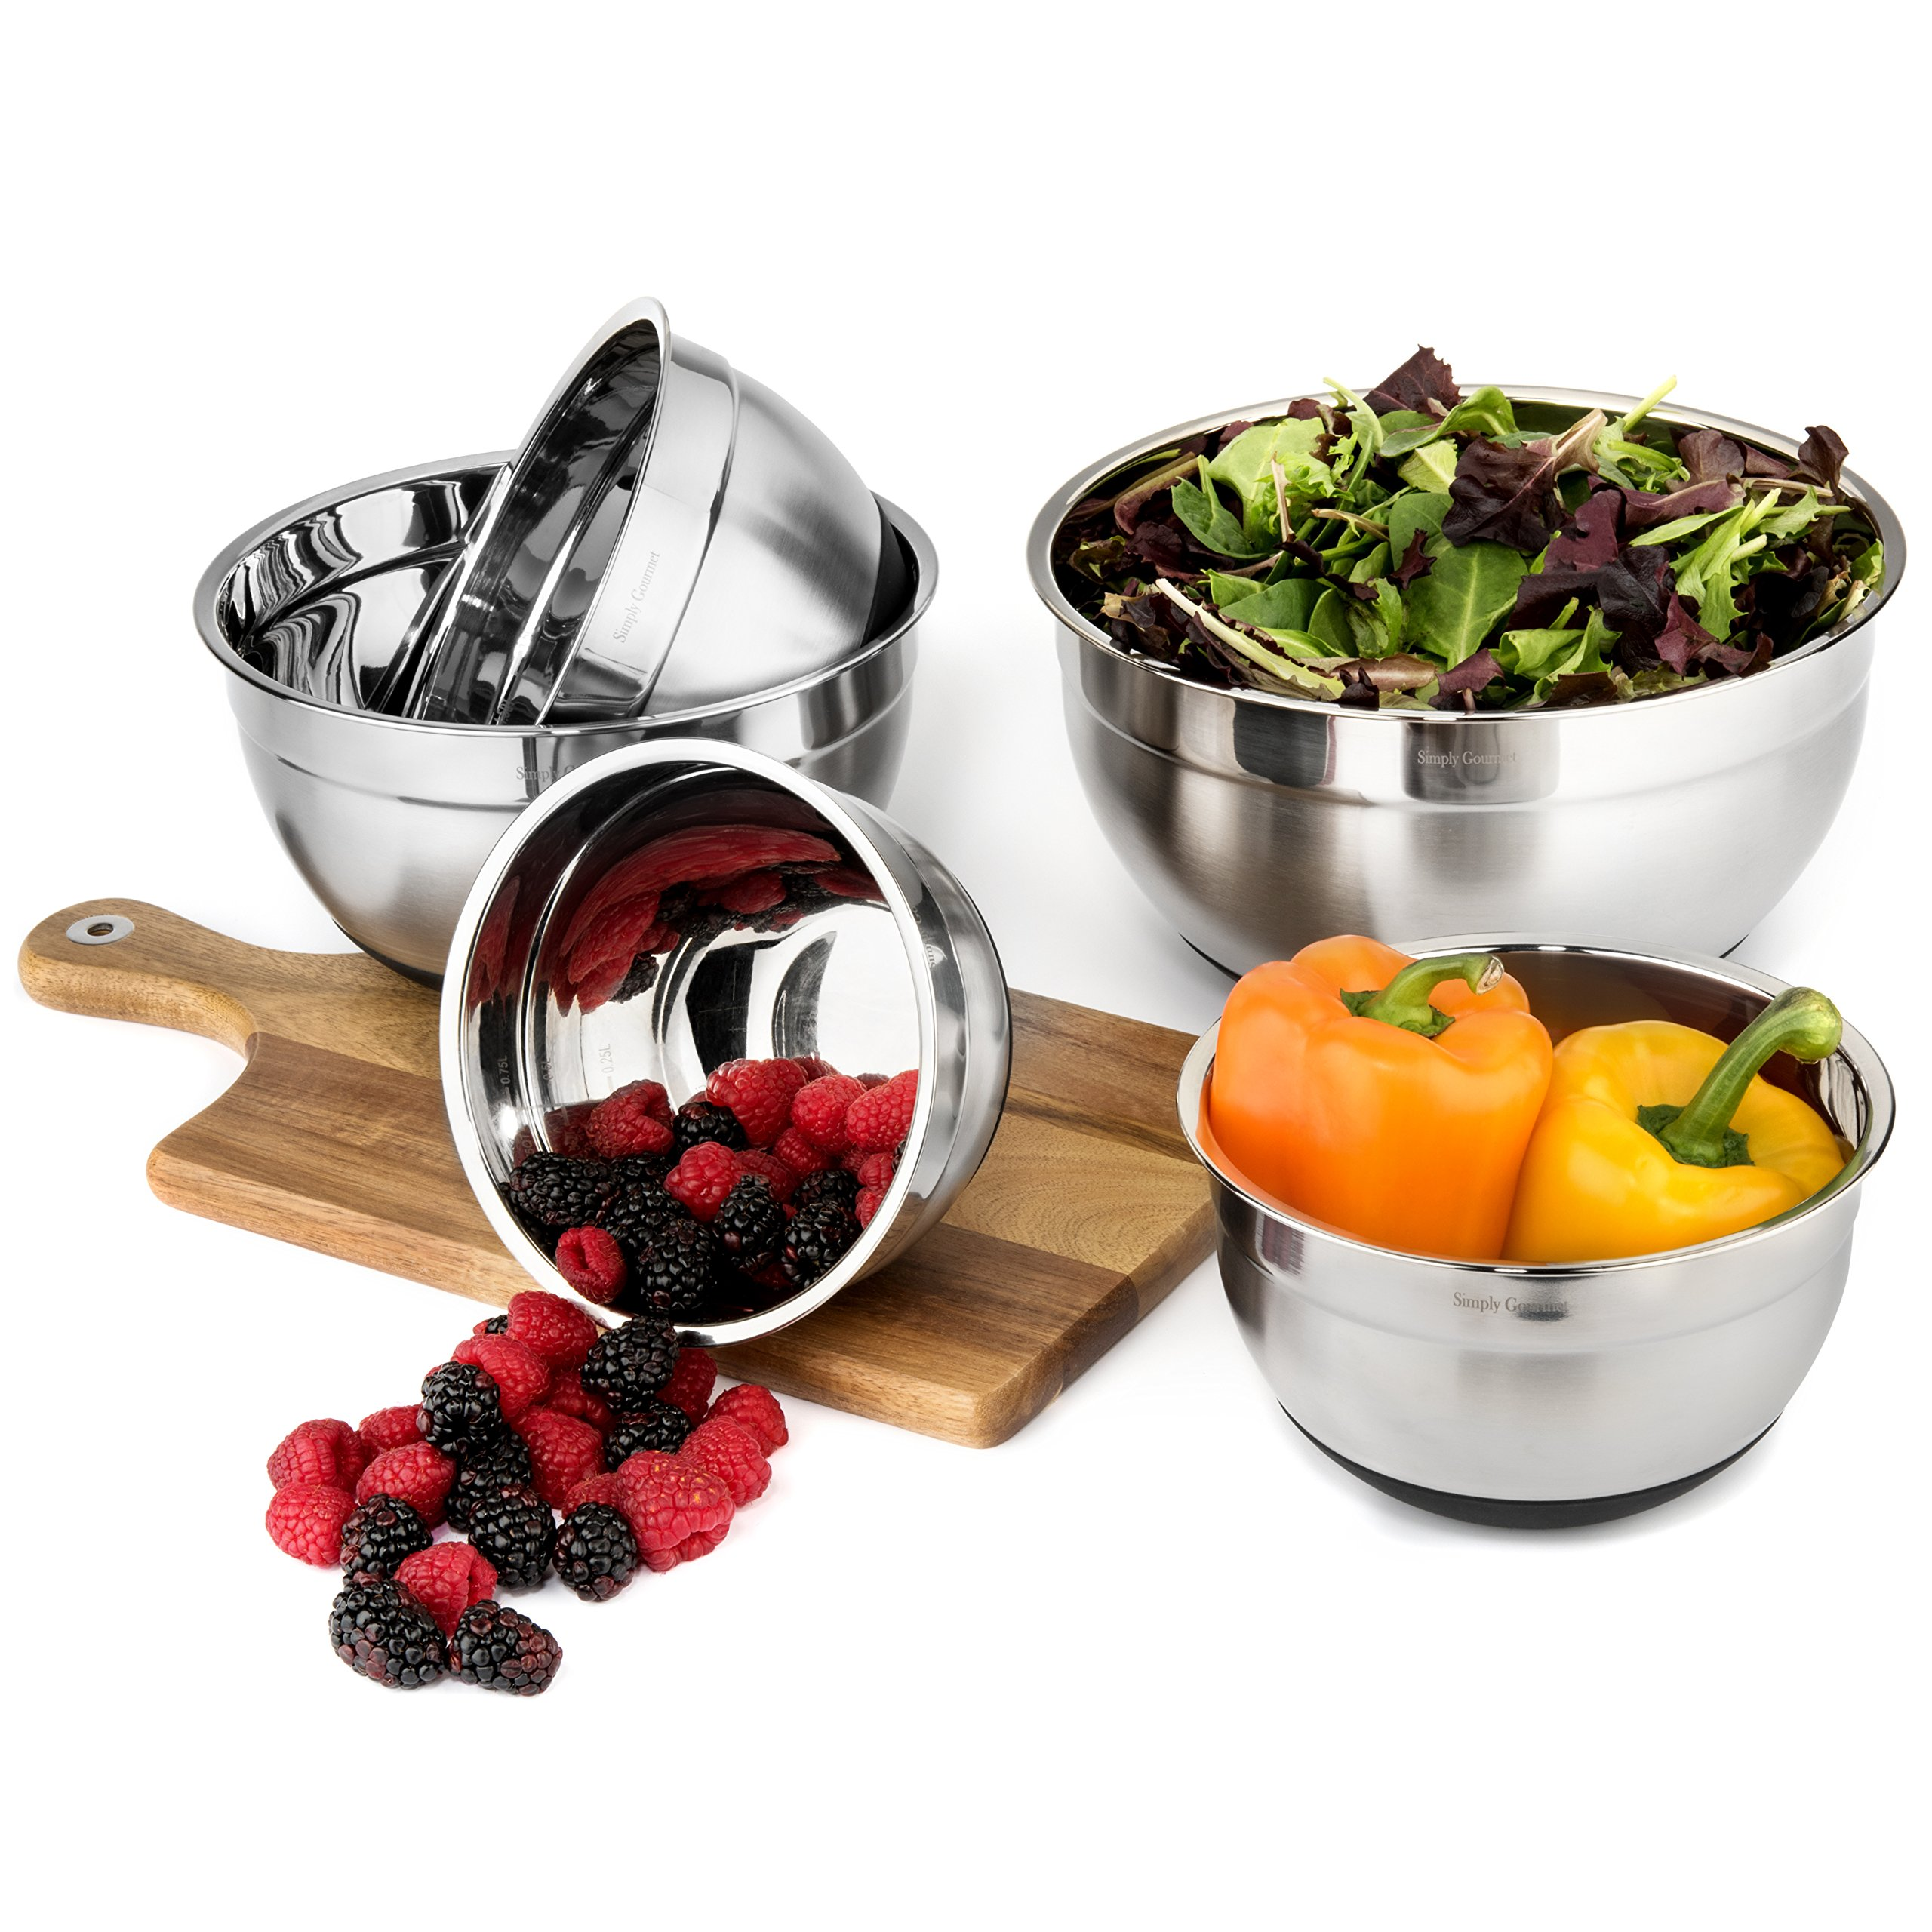 Premium Mixing Bowls with Lids - by Simply Gourmet. Stainless Steel Mixing Bowl Set Contains 5 Bowls with Airtight Lids, Non-Slip Bottoms, and a Flat Base for Stable Mixing. Bowls Nest for Storage … by Simply Gourmet (Image #3)